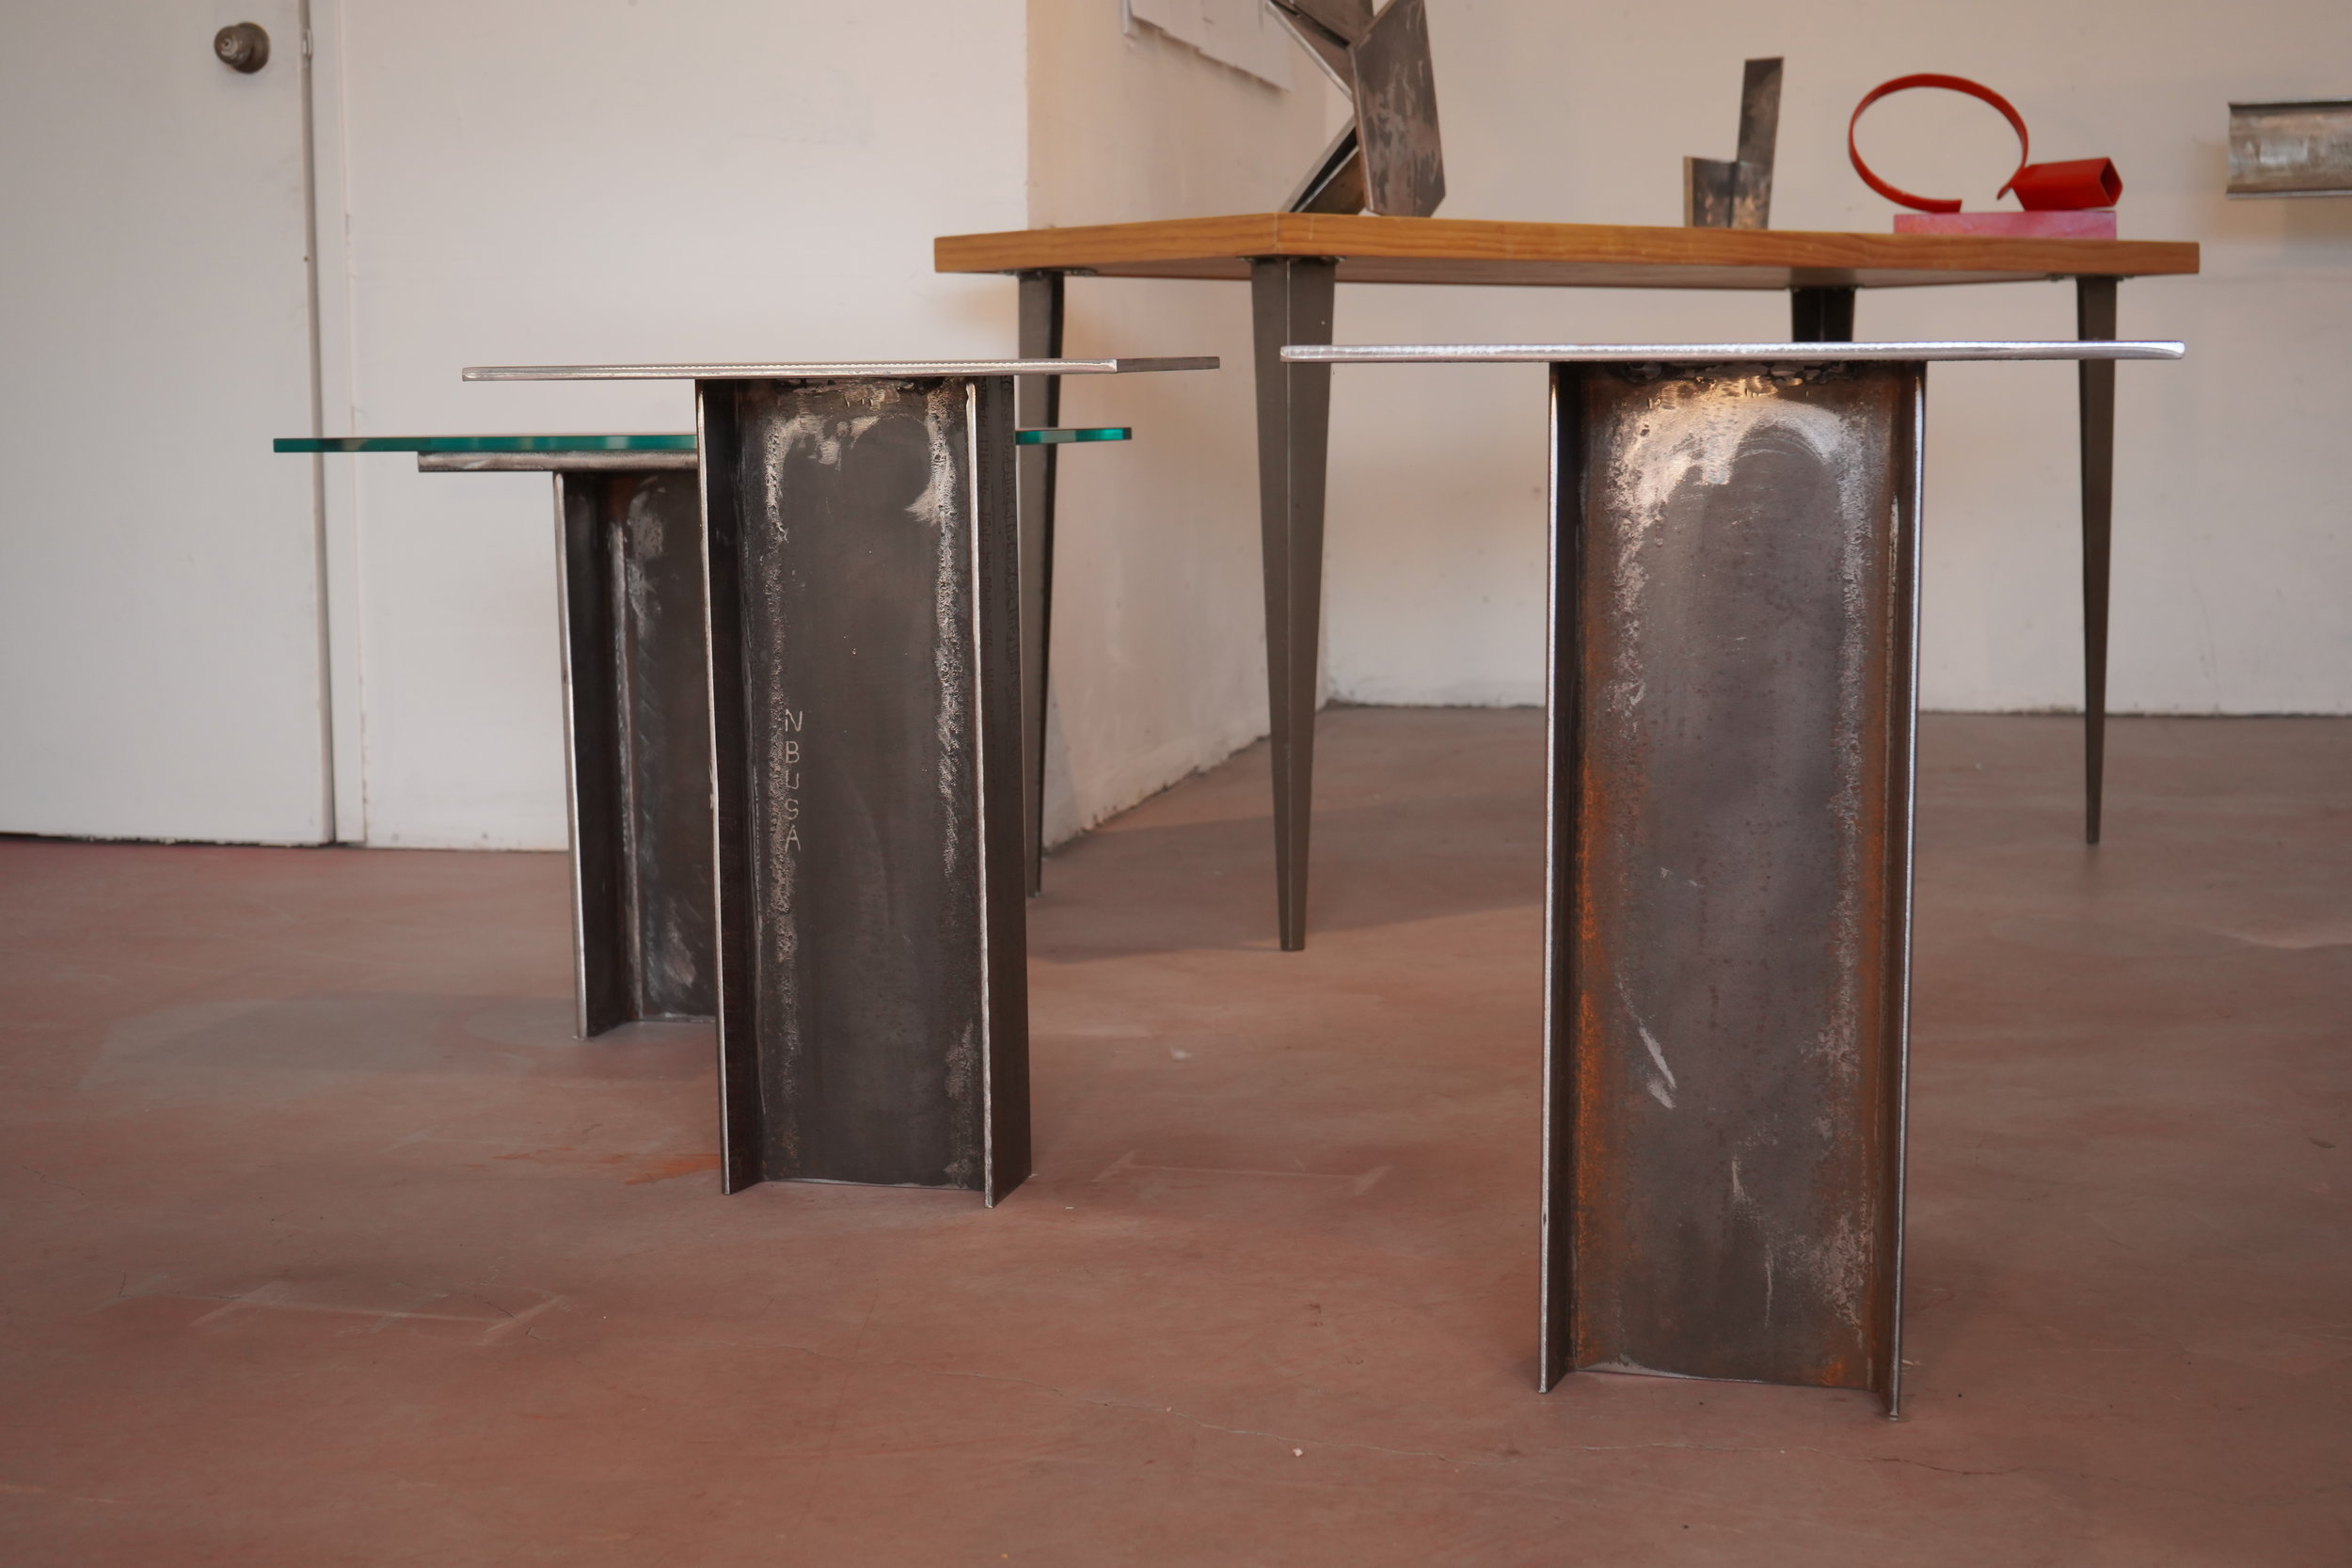 Table Nos 3, 4, and 5, 2019, SOLD